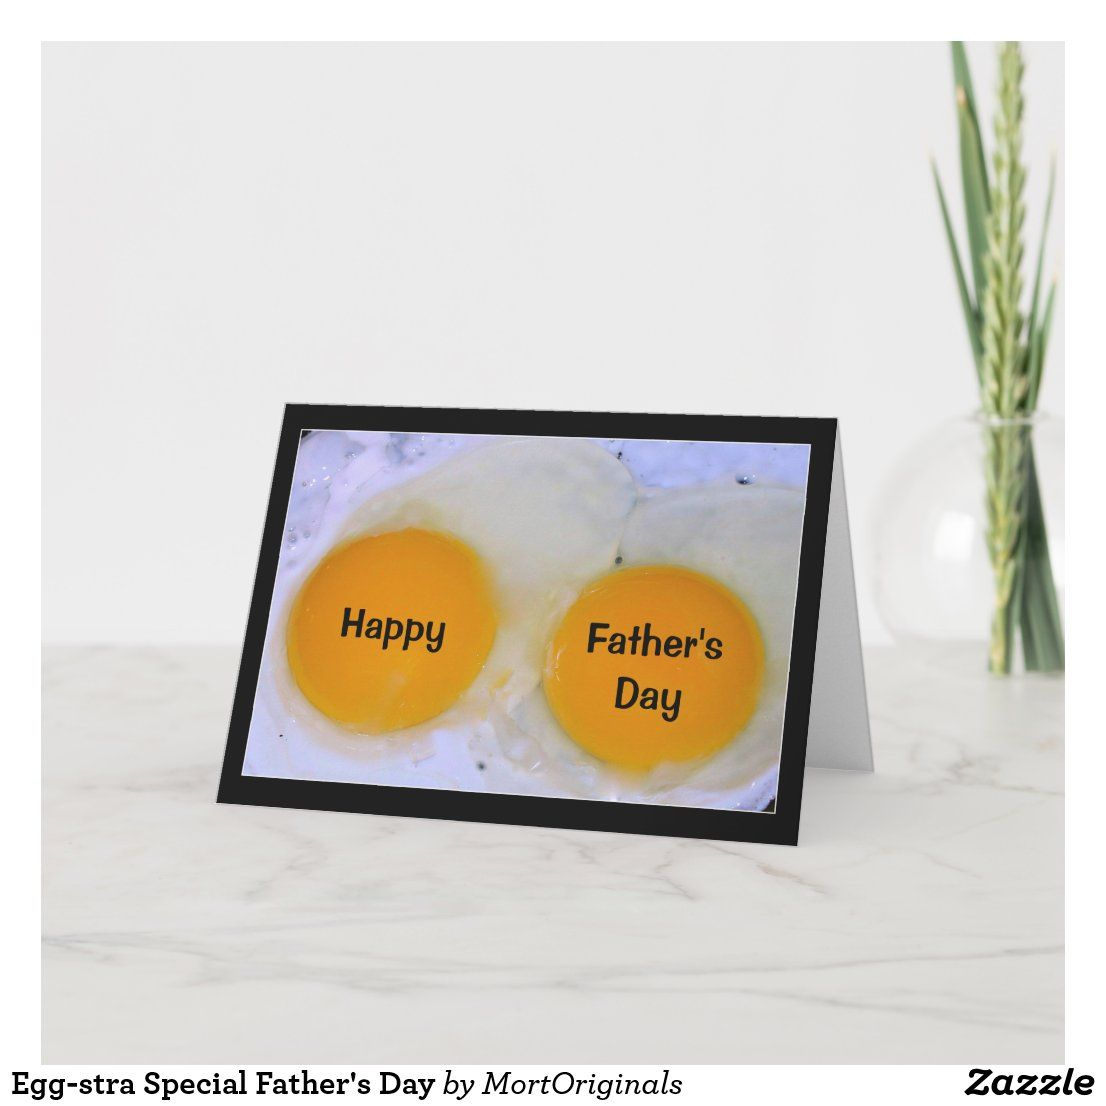 Egg-stra Special Father's Day Card